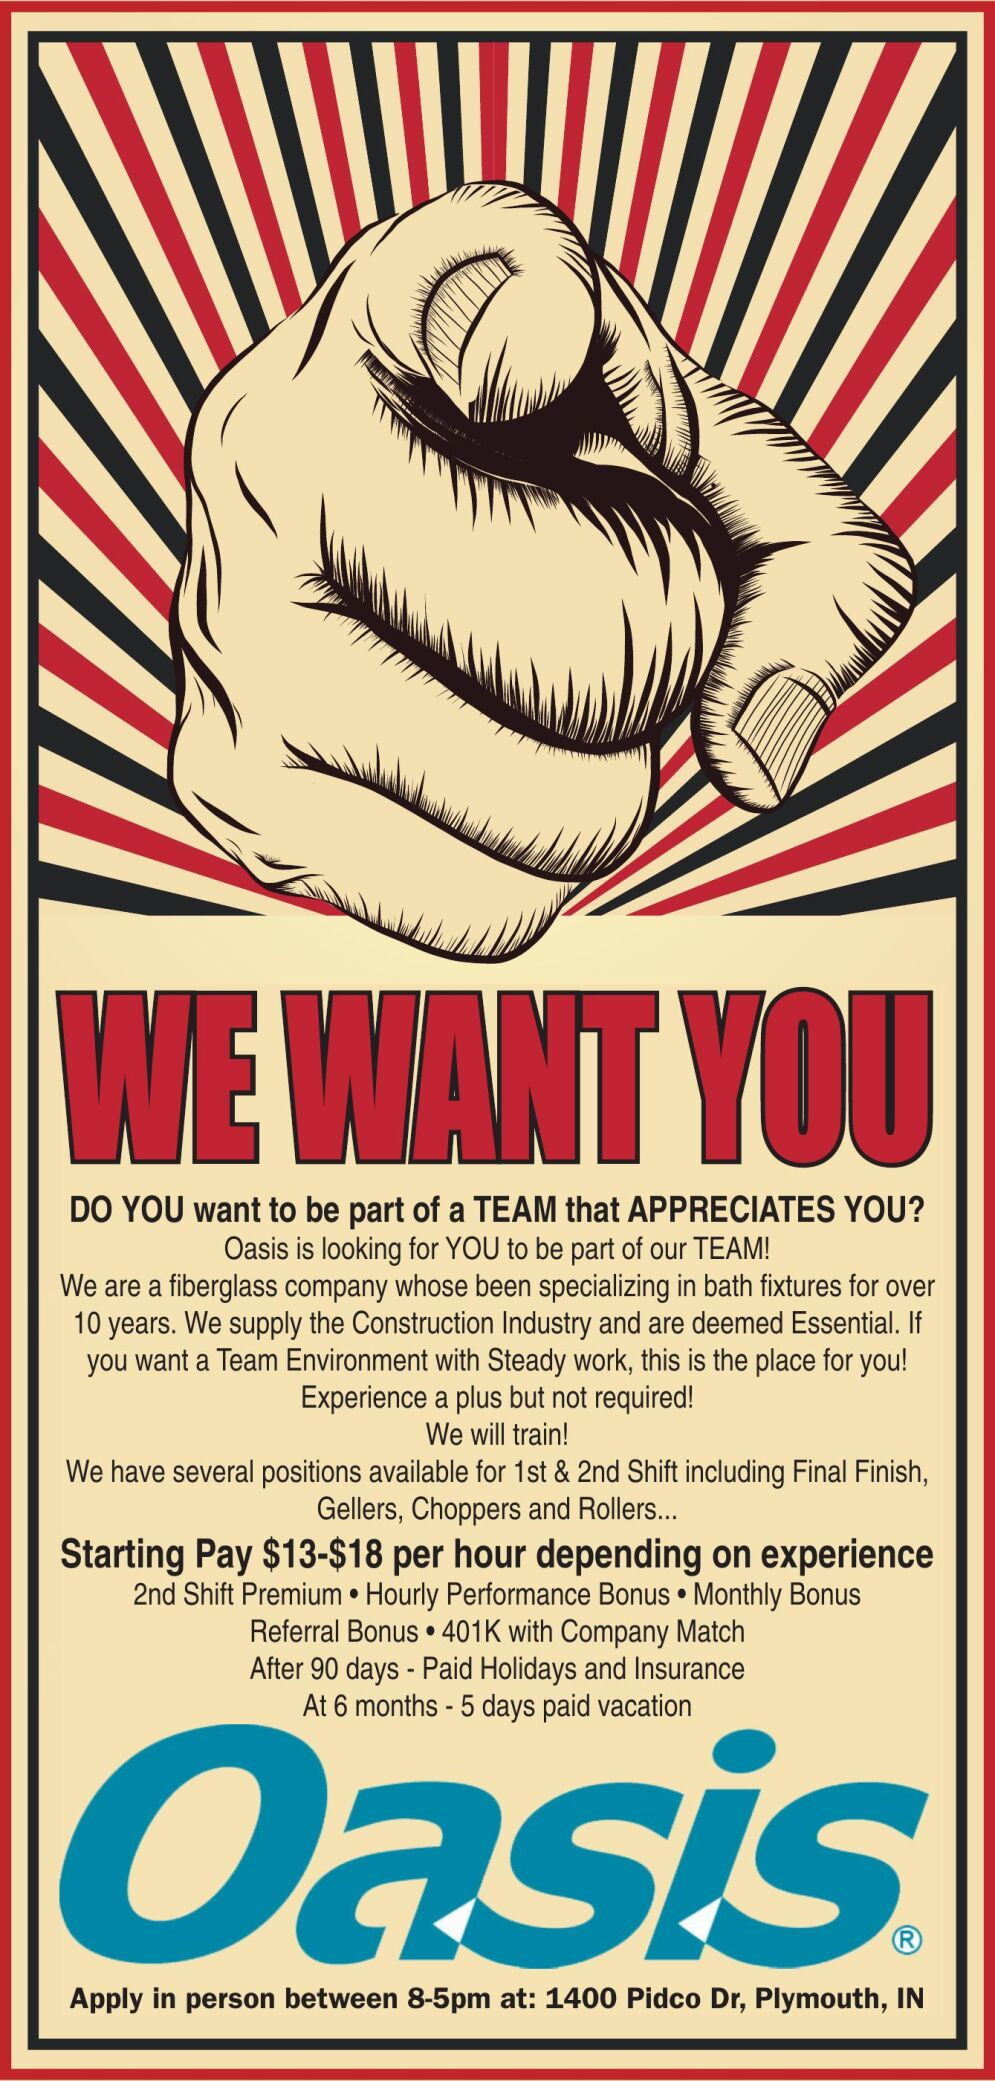 We have several positions available for 1st & 2nd Shift including Final Finish, Gellers, Choppers and Rollers...